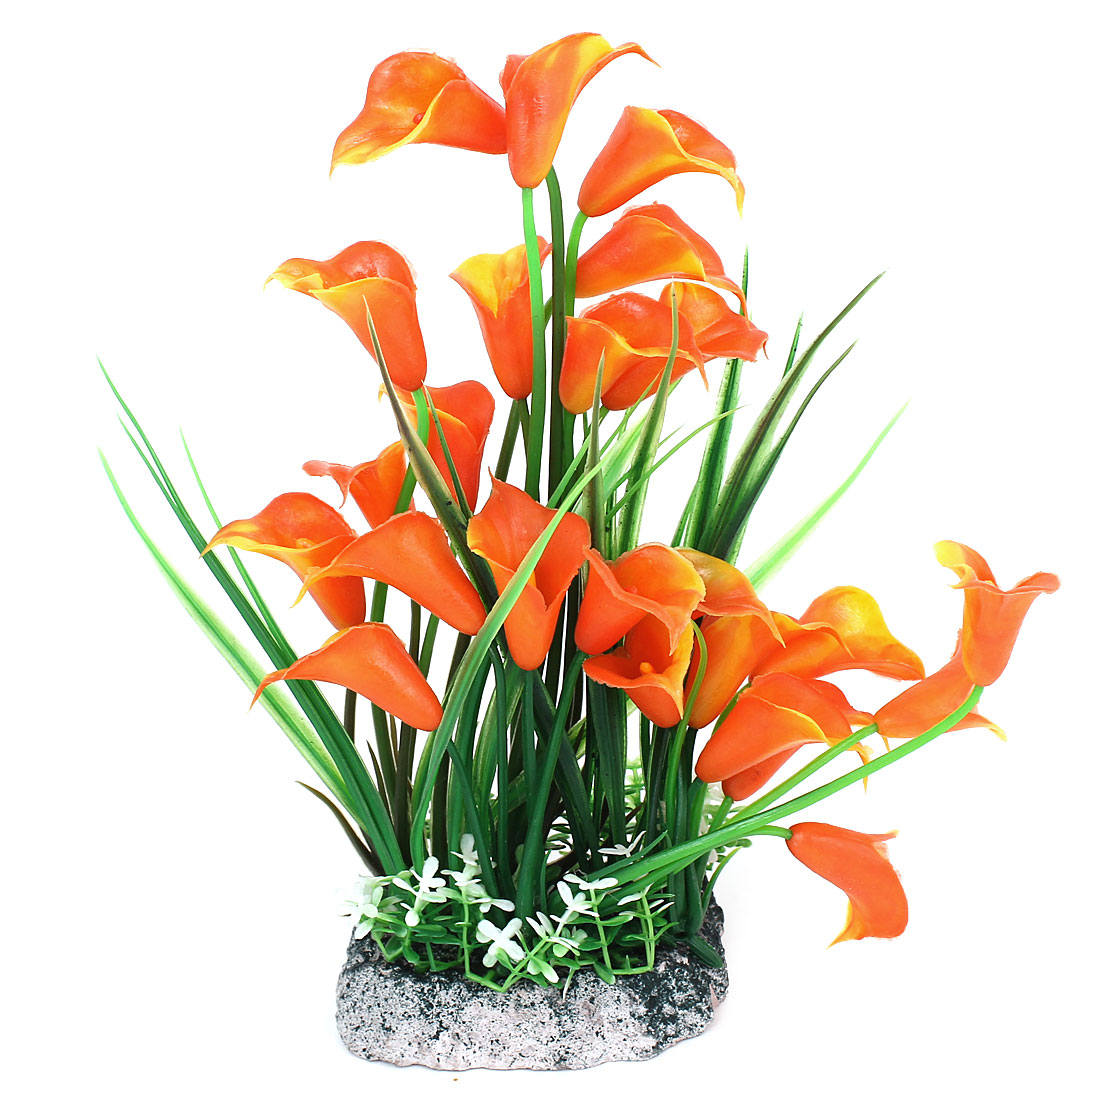 Fish Tank Morning Glory Accent Water Plant Grass Decor Orange Green 24cm High